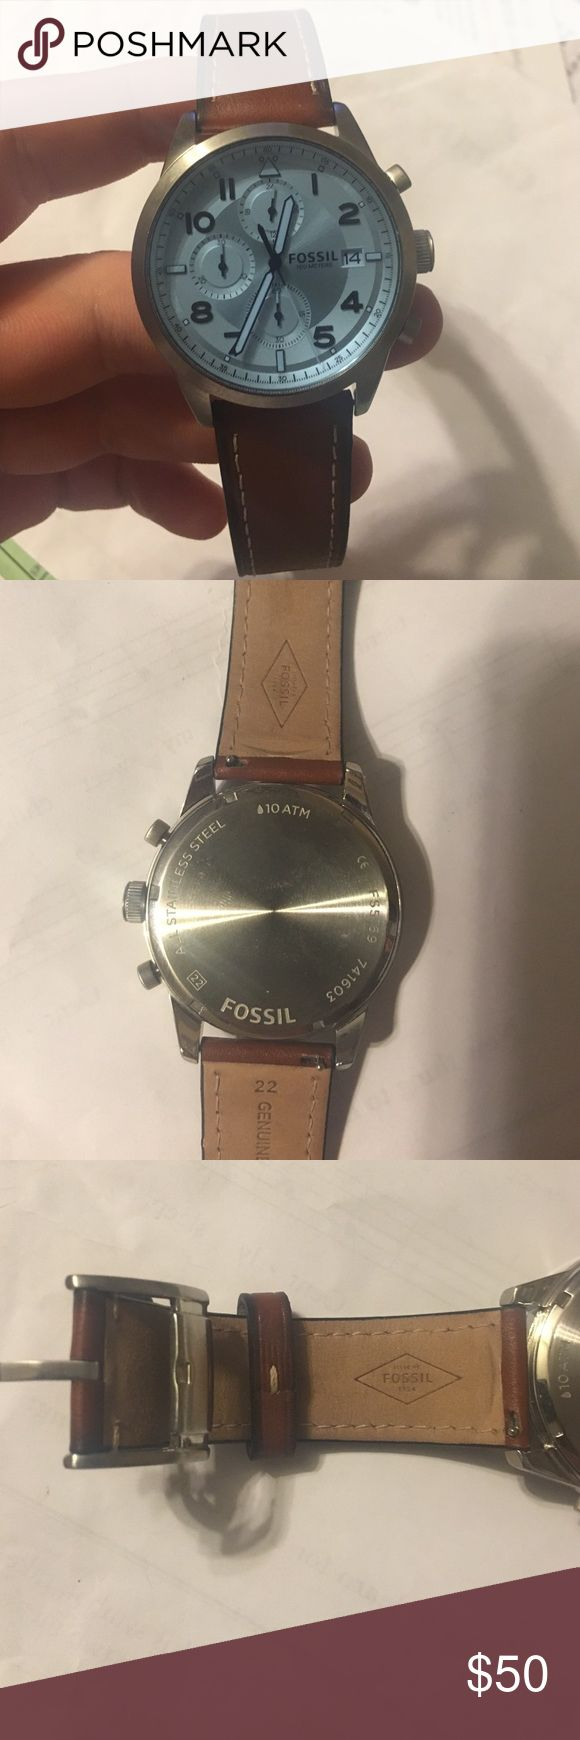 Selling this Fossil Watch on Poshmark! My username is: brycechambers21. #shopmycloset #poshmark #fashion #shopping #style #forsale #Fossil #Other